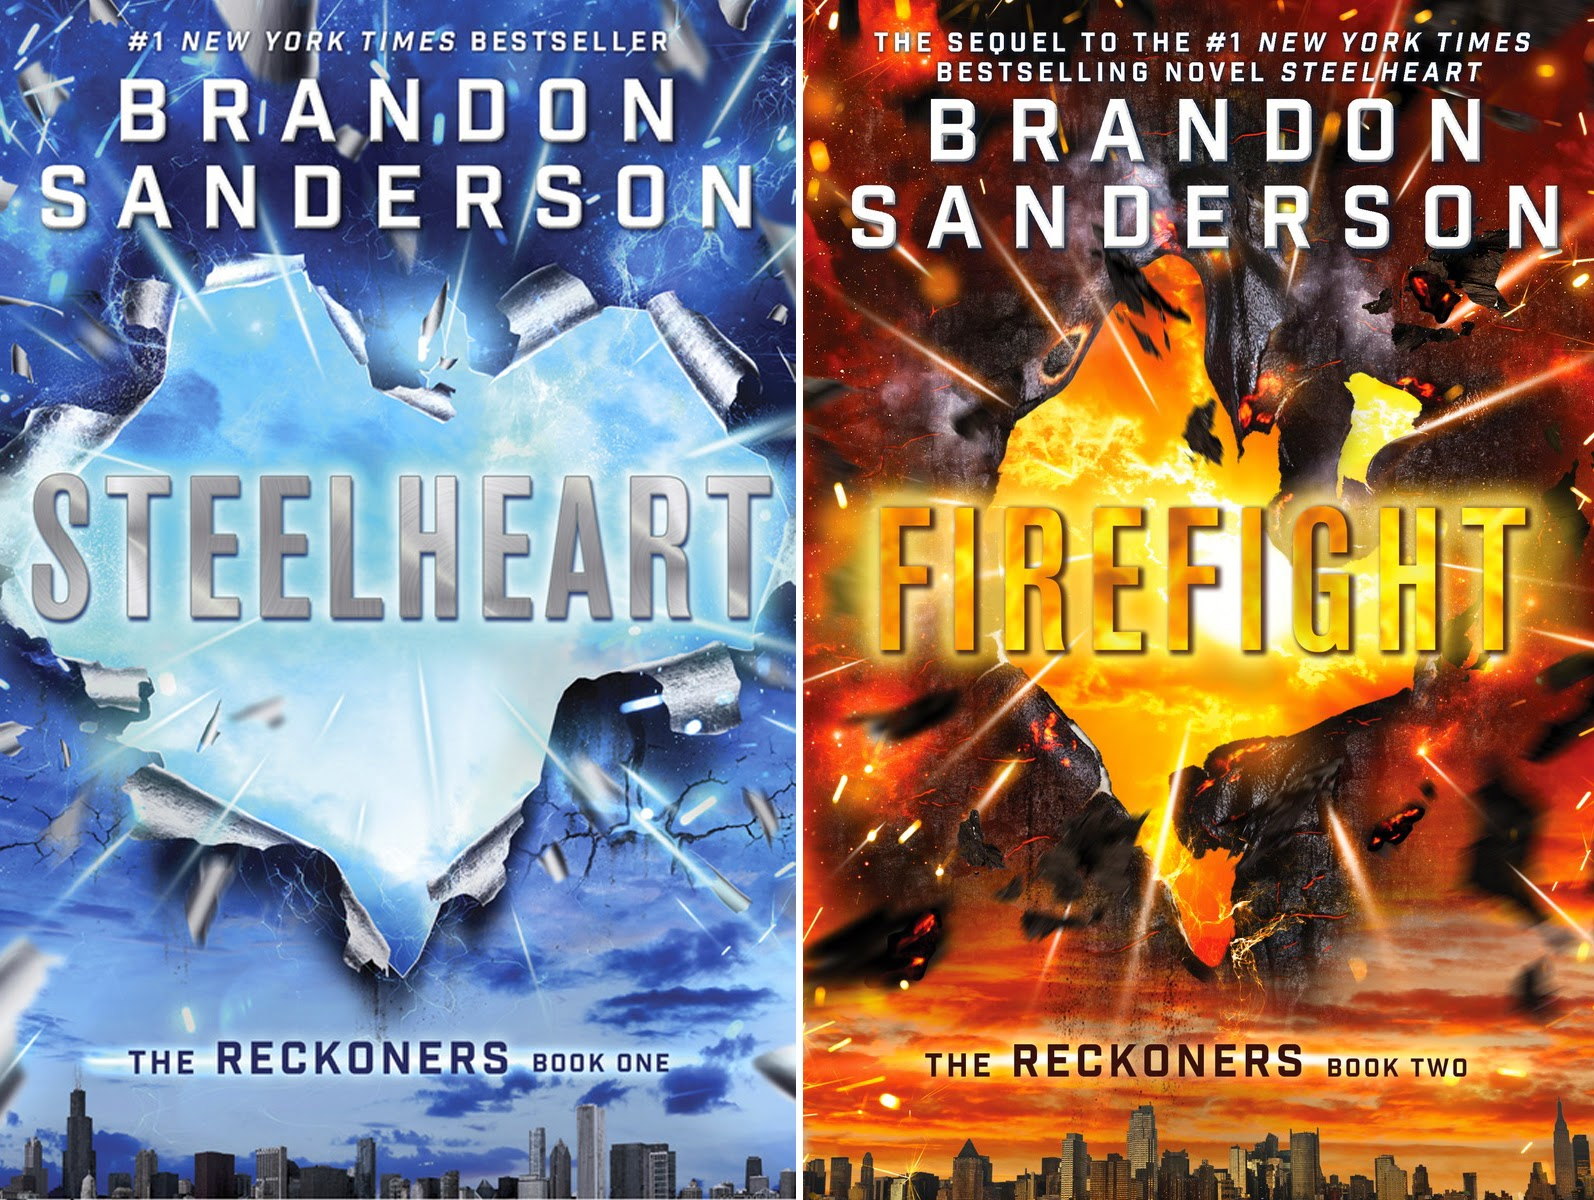 Win Brandon Sanderson's RECKONERS Series STEELHEART and FIREFLIGHT ...